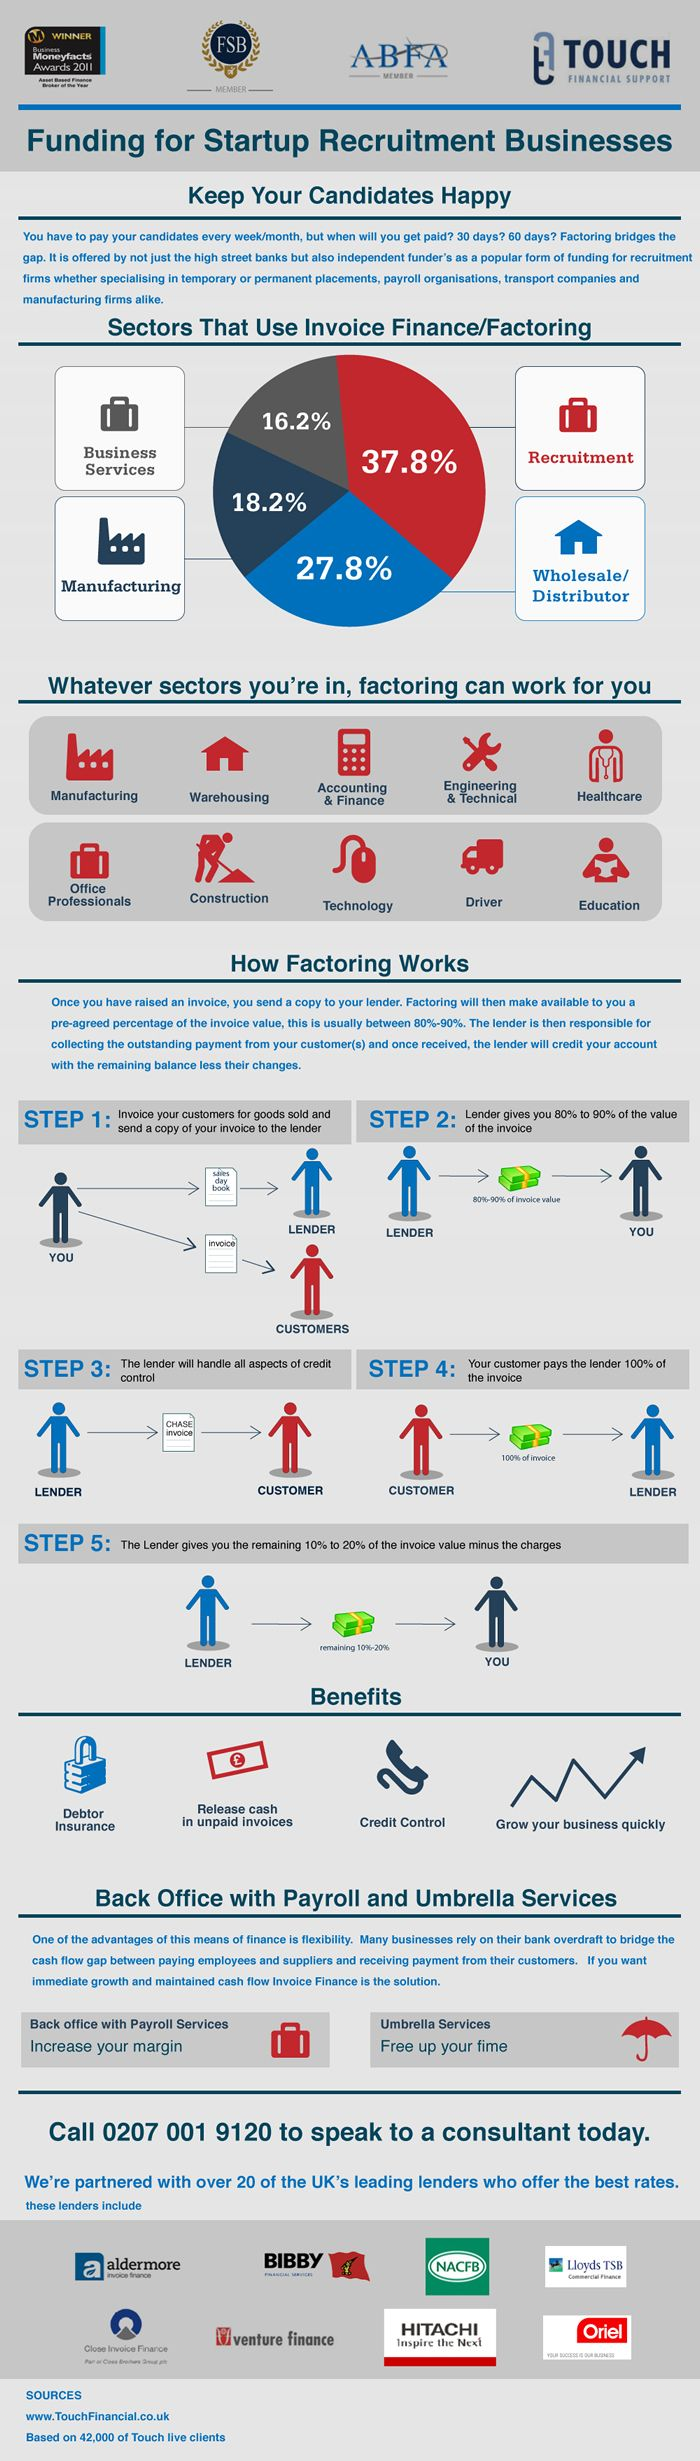 A visual guide to Factoring for recruitment companies